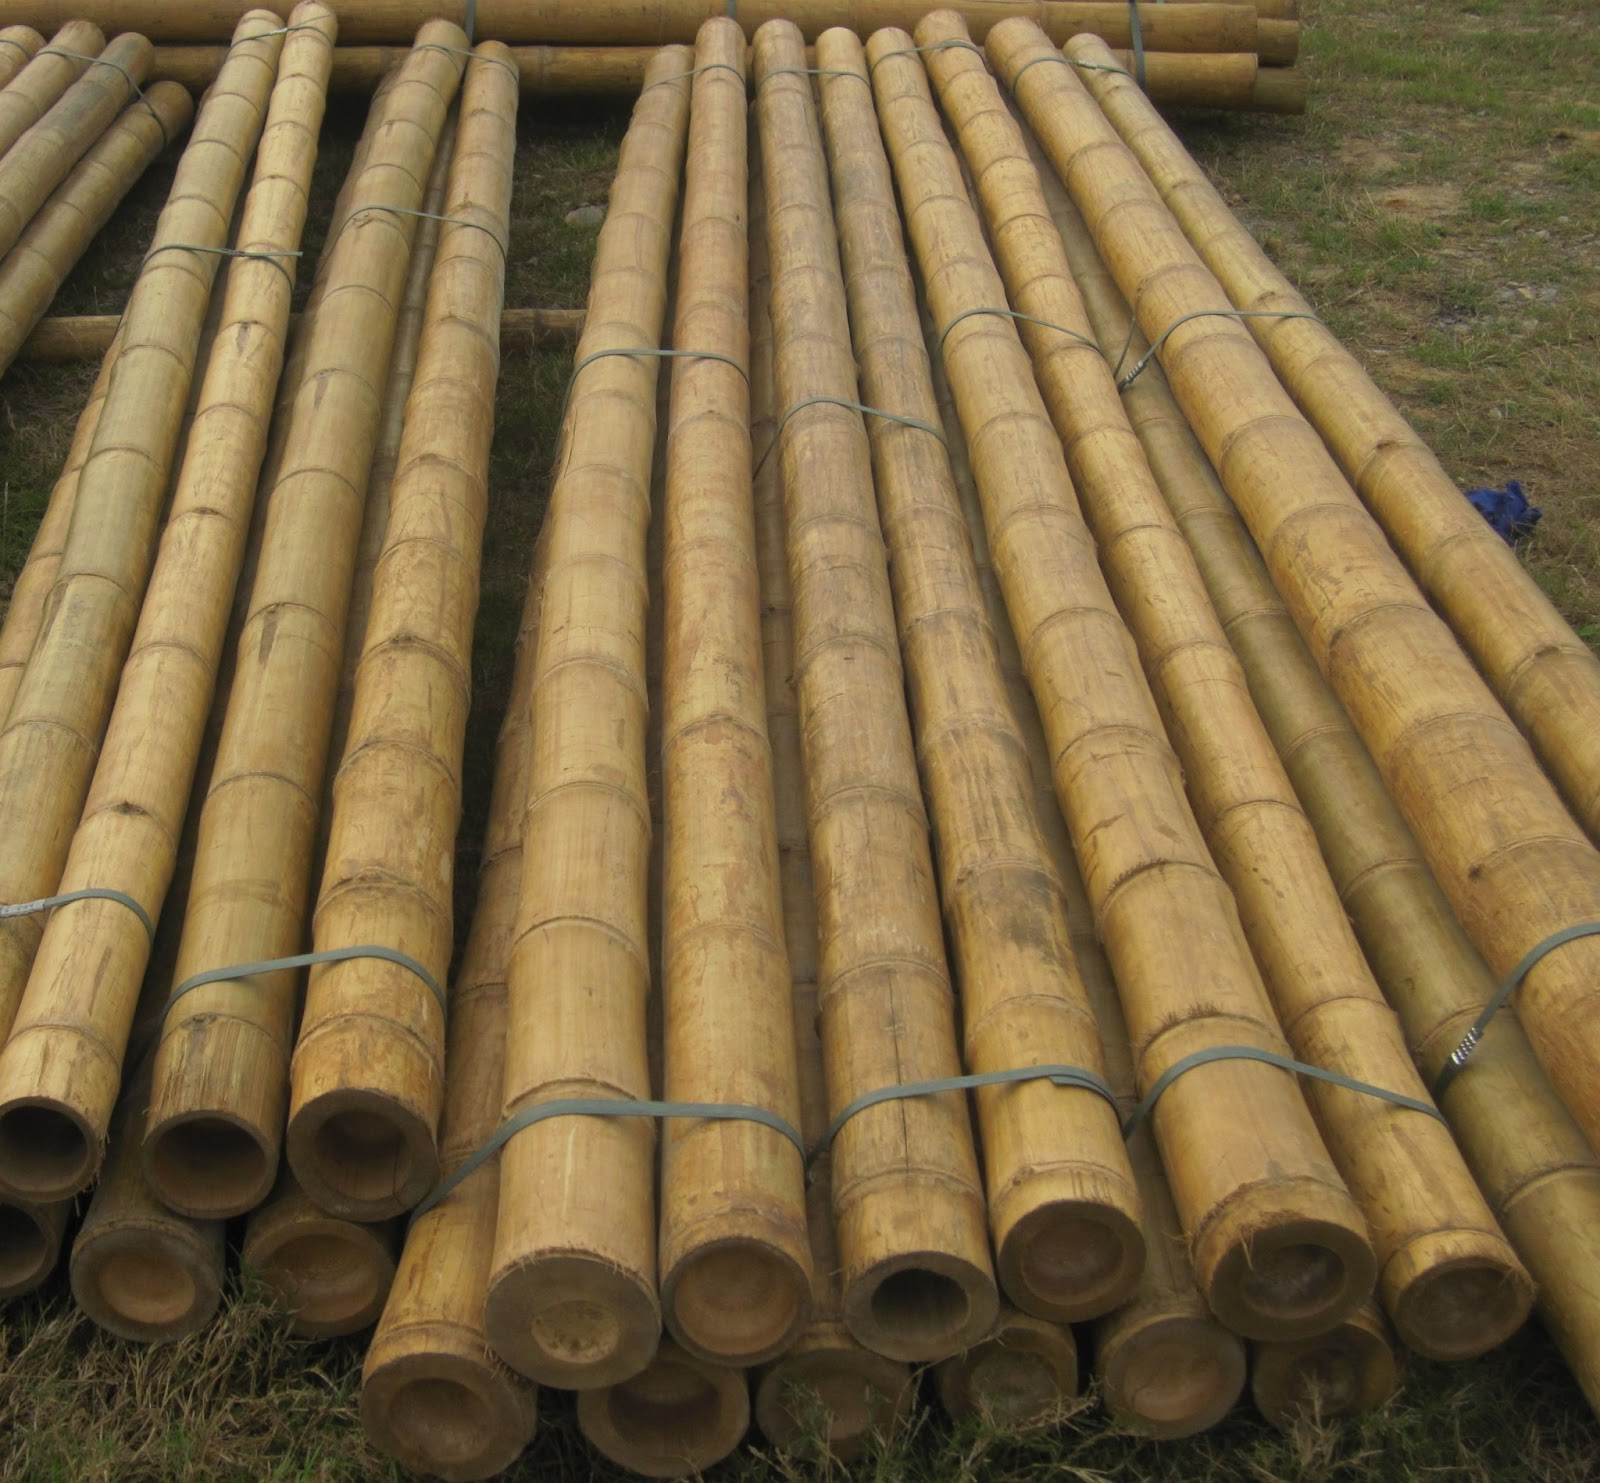 Best Bamboo Cane Pole Stake all decor ideas for FencesCustom